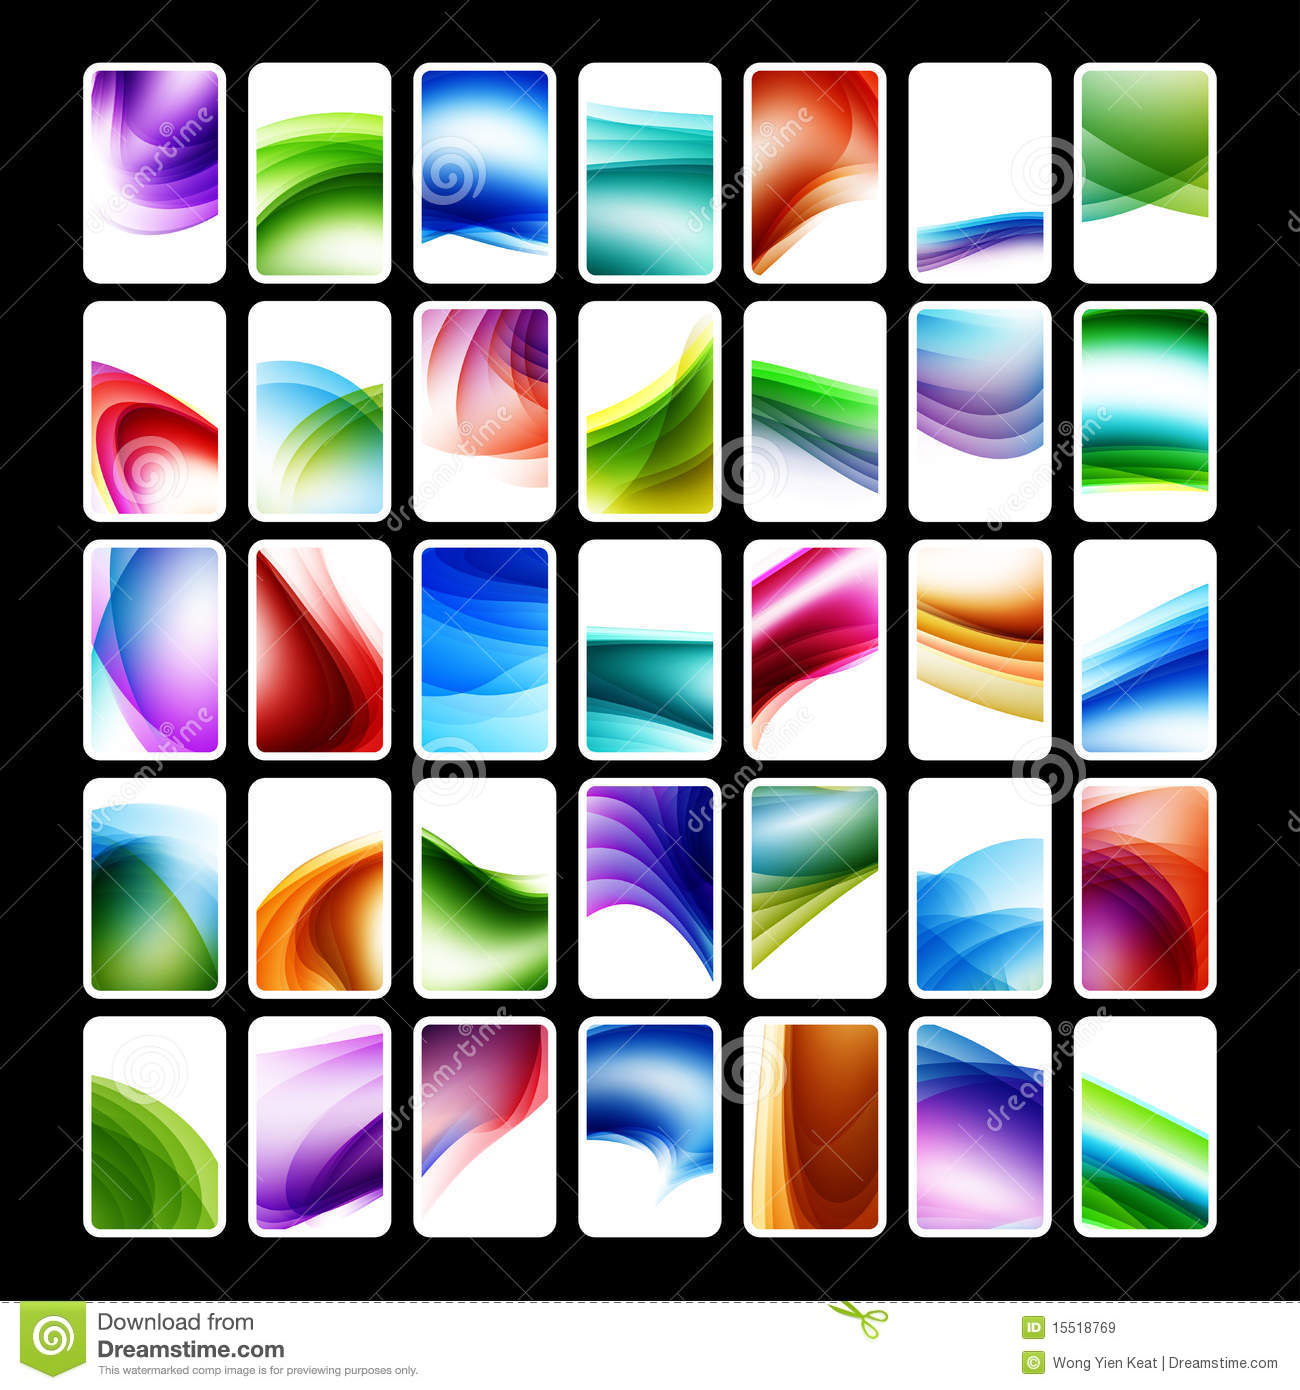 card backgrounds free - Leon.escapers.co